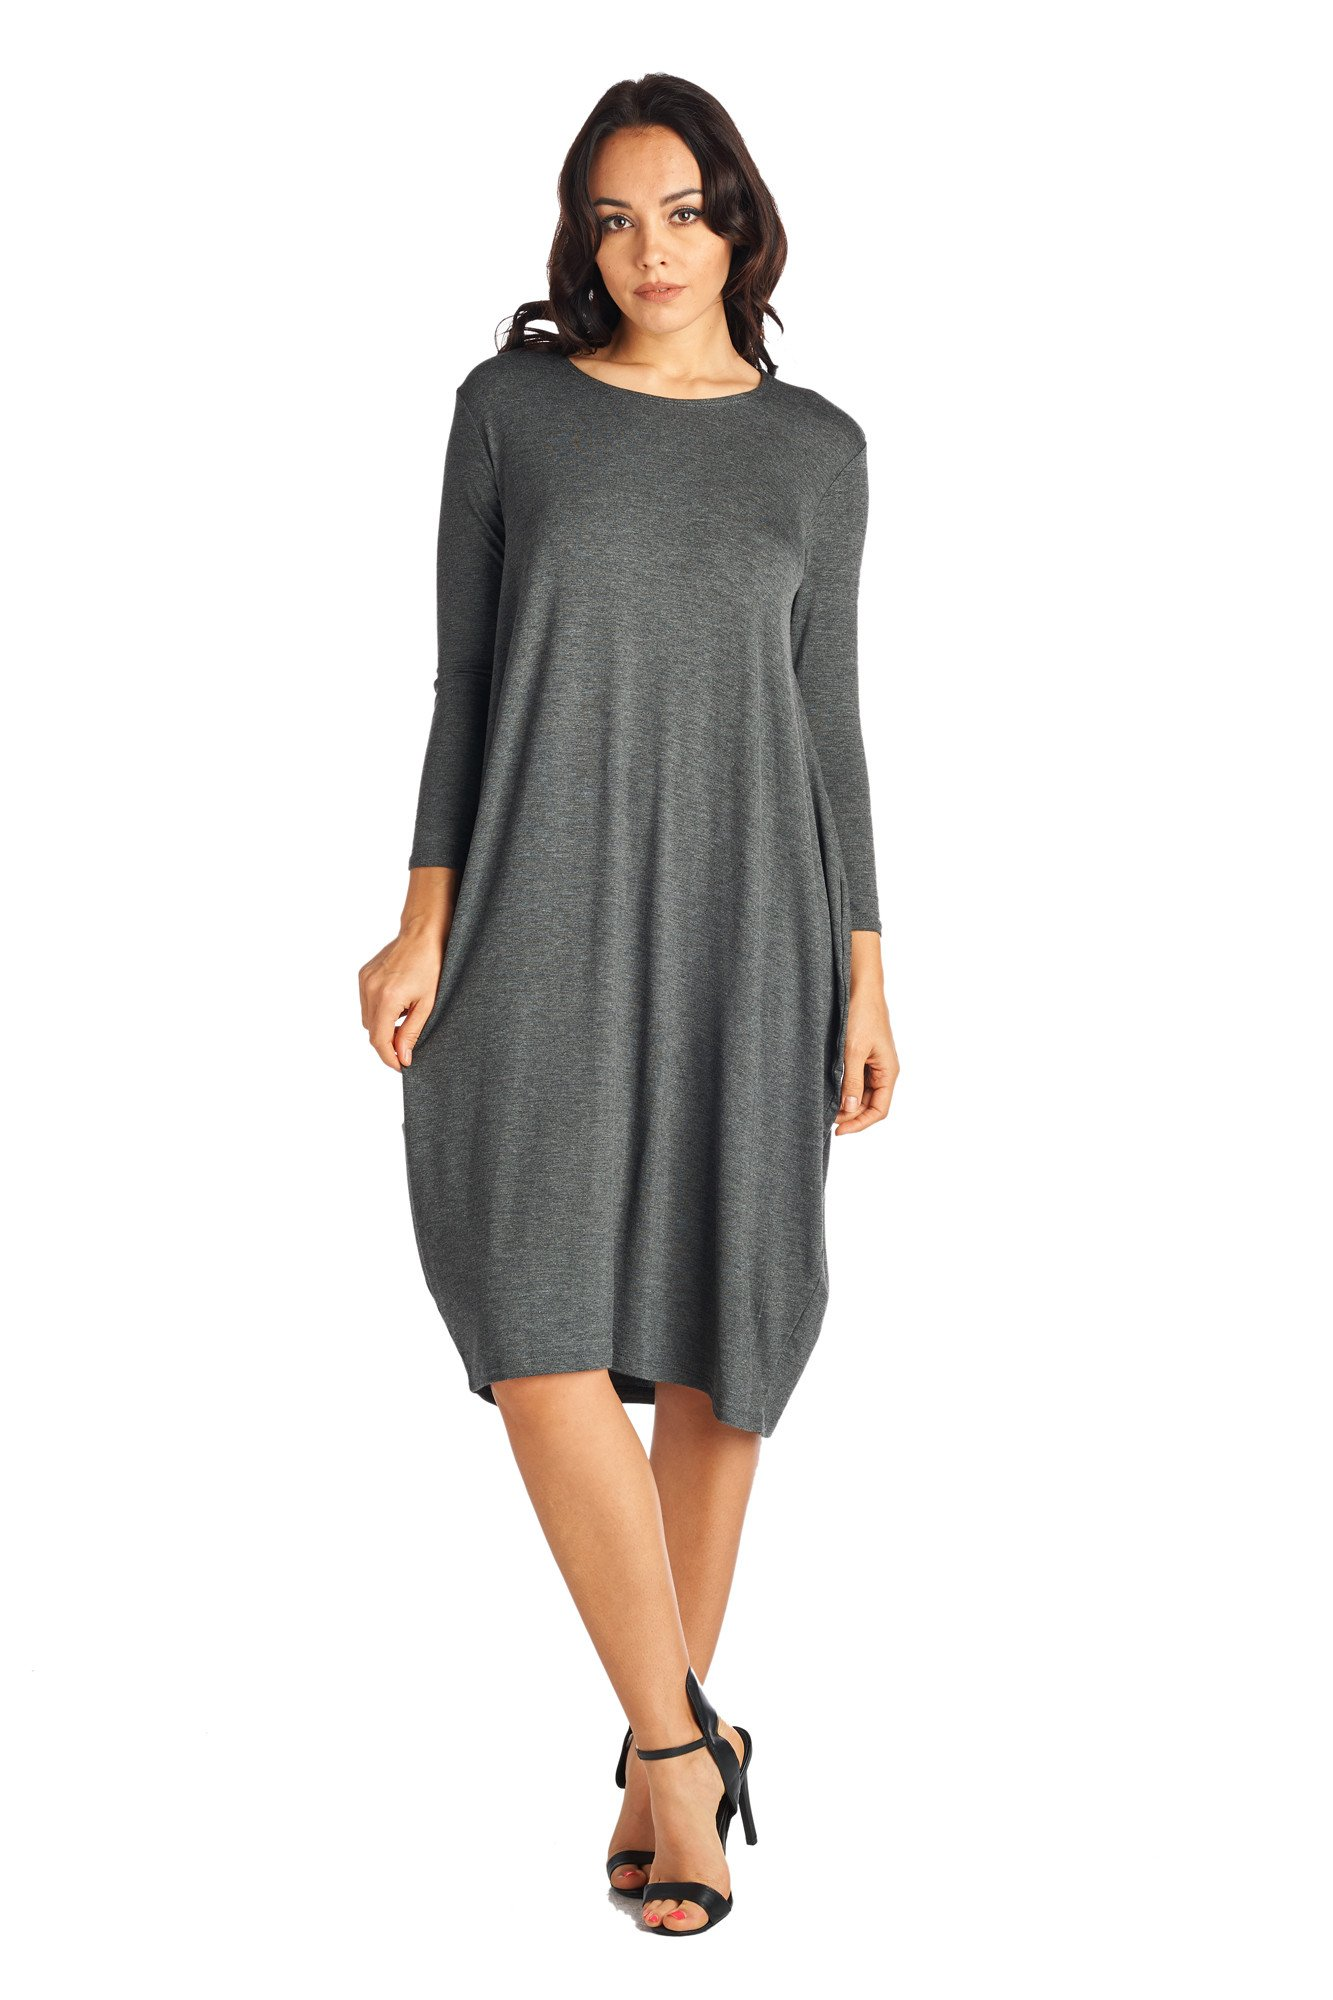 82 Days 82D-8255RS-CHC-MD Women's Rayon Span Long Sleeves Loose Fit Jersey Midi Dress - Solid